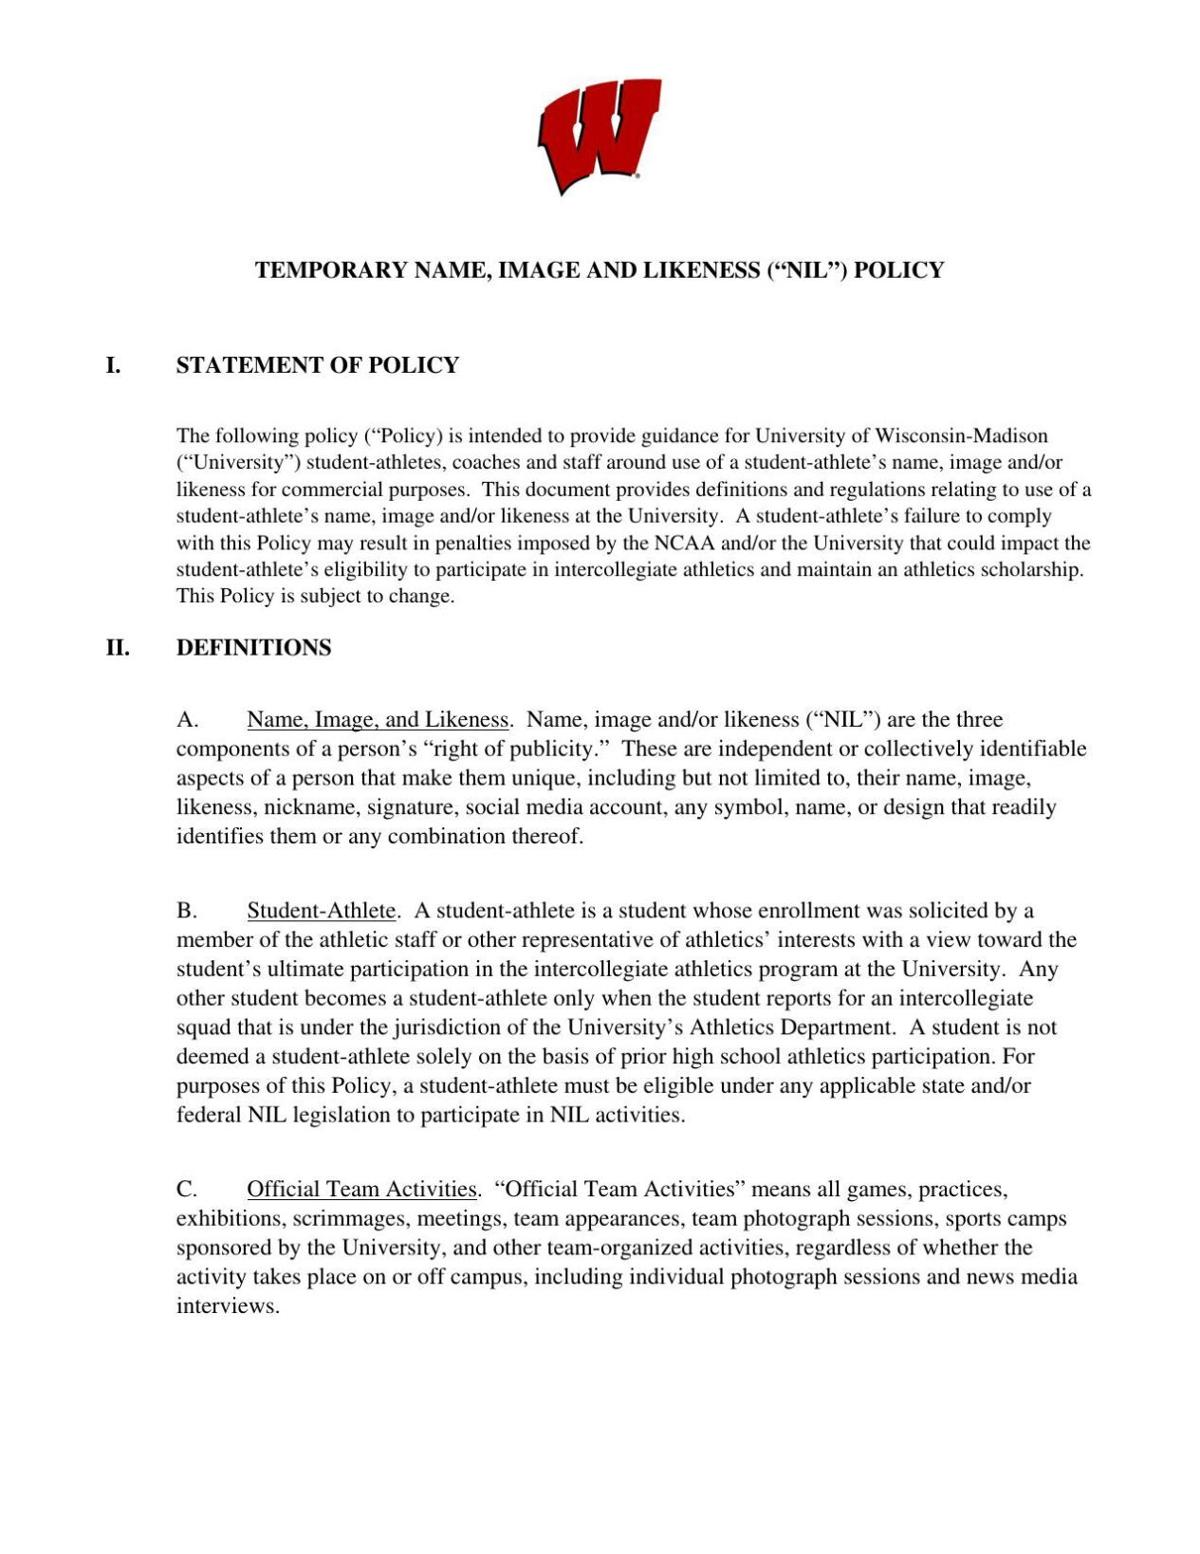 Wisconsin Badgers' NIL policy